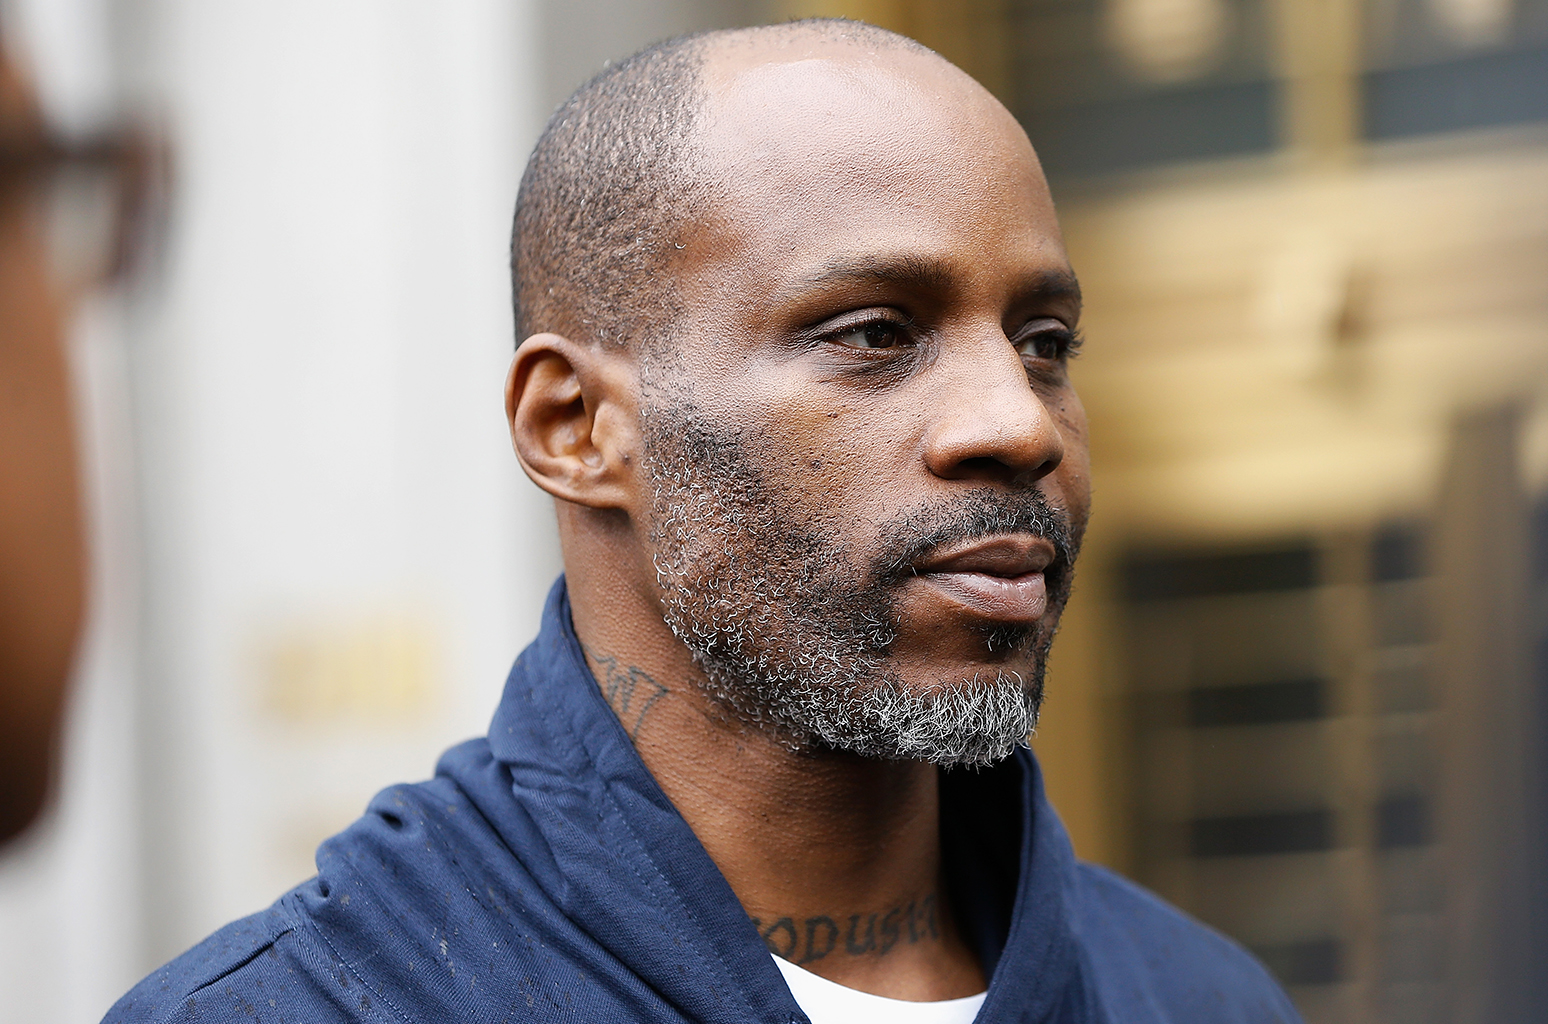 DMX Taken Into Custody for Failing Drug Tests